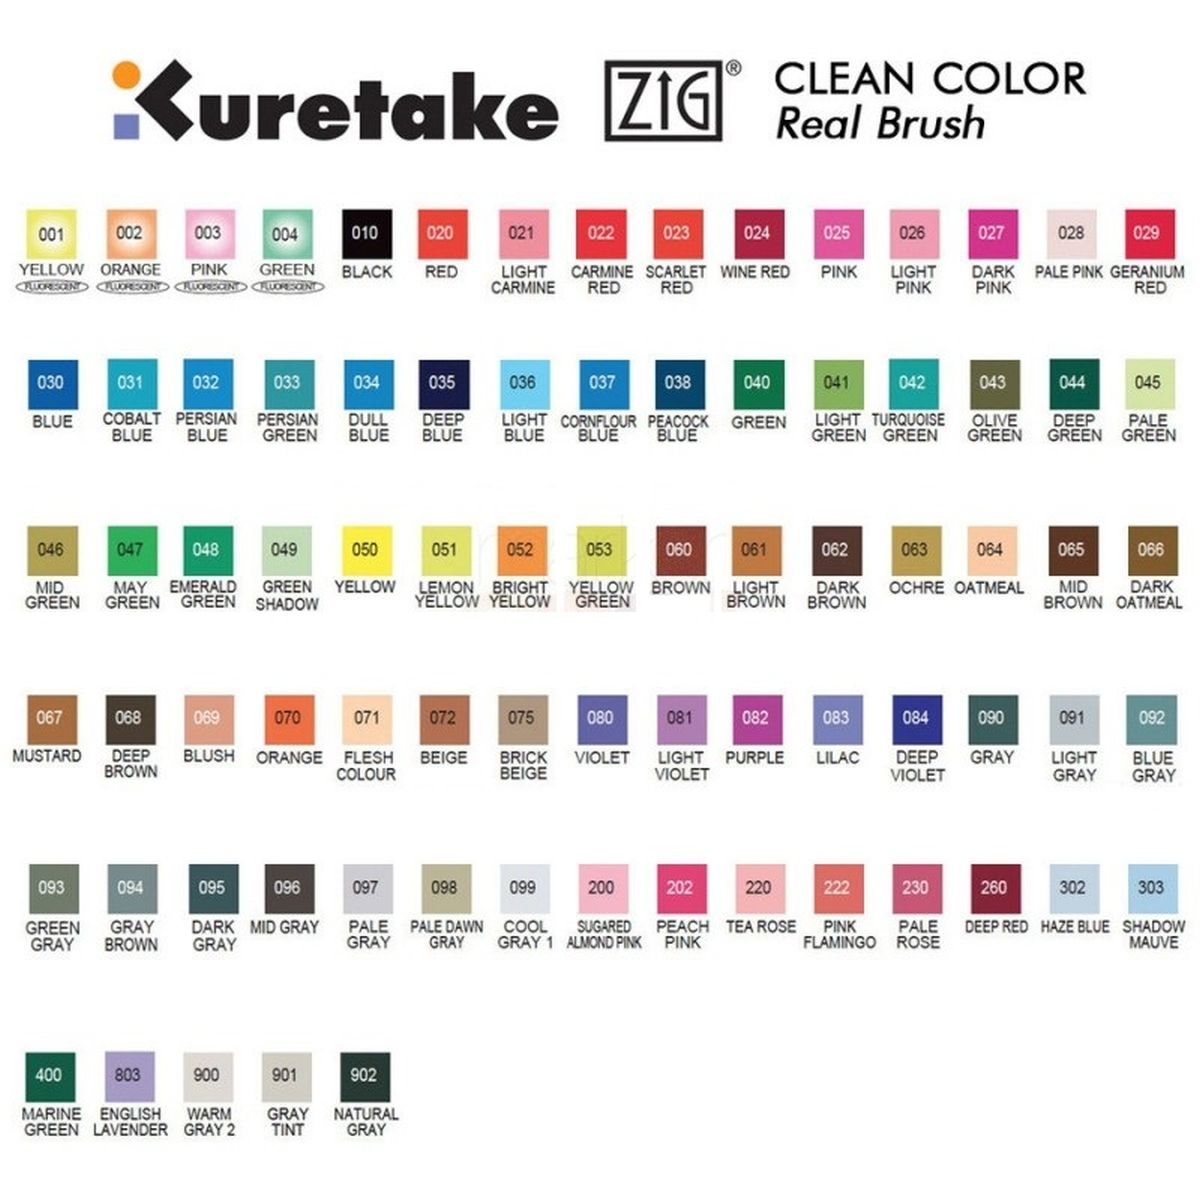 Kuretake Zig Clean Color Real Watercolor Brush Pens 80 Brush